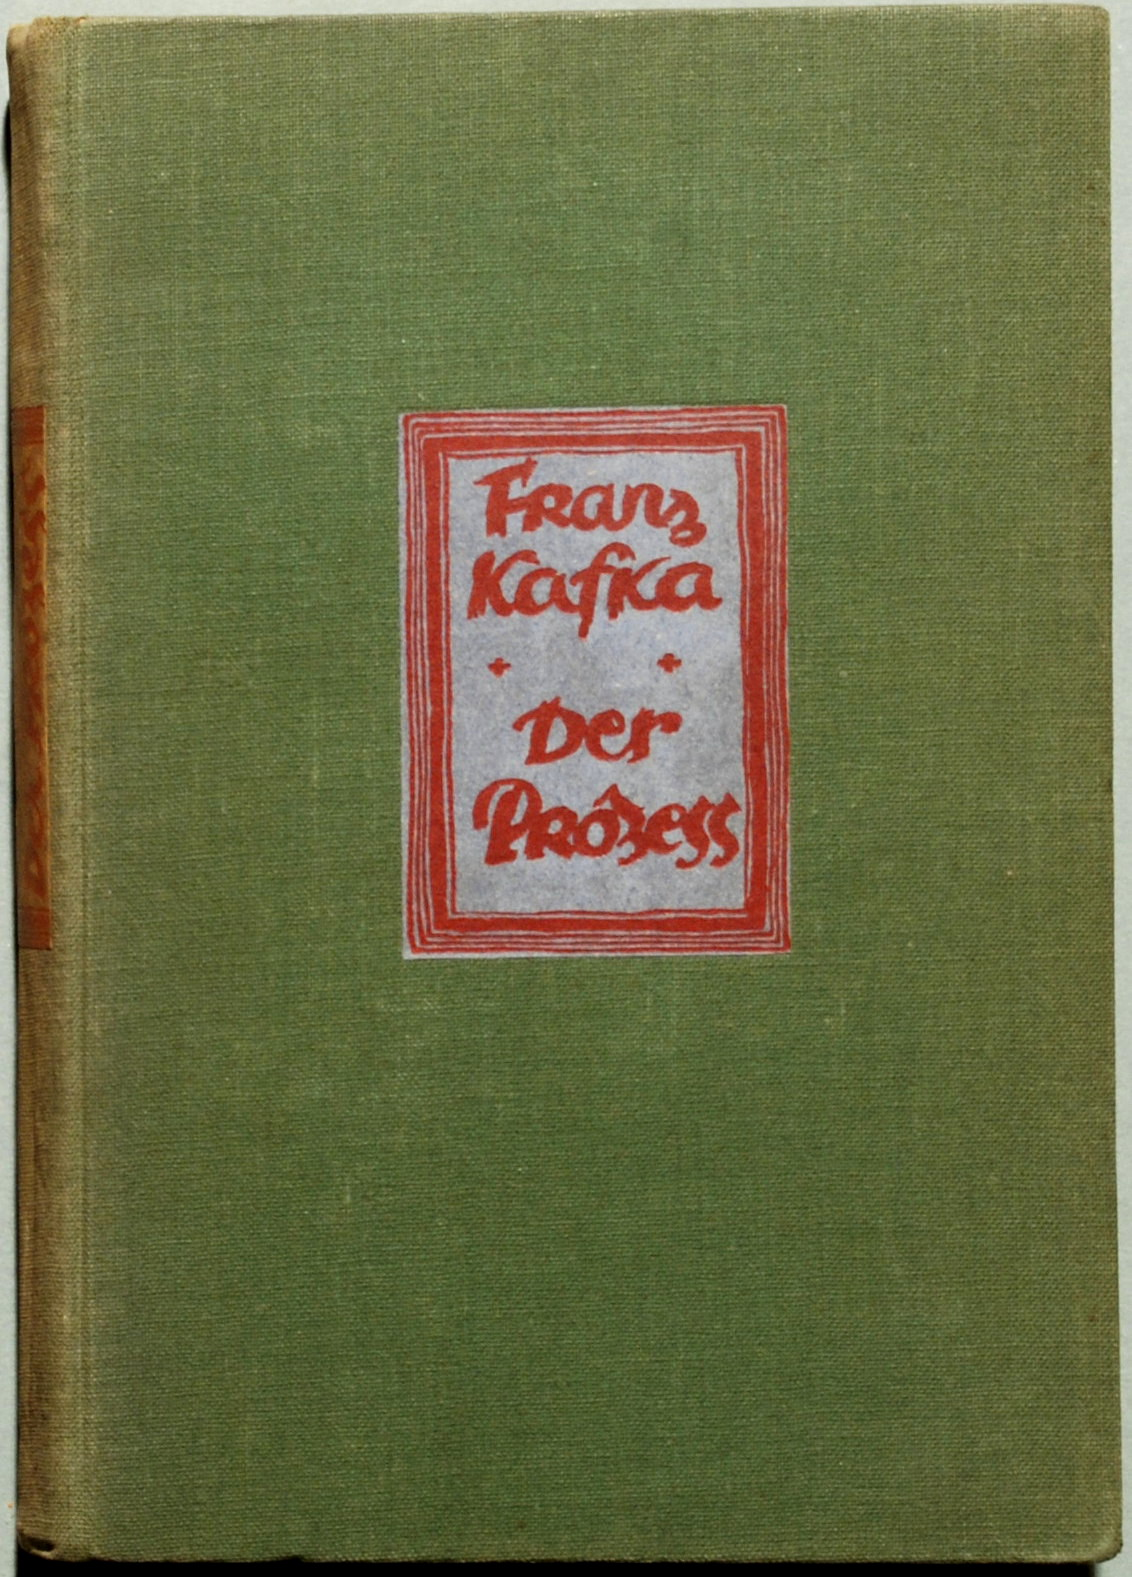 http://upload.wikimedia.org/wikipedia/commons/8/87/Kafka_Der_Prozess_1925.jpg